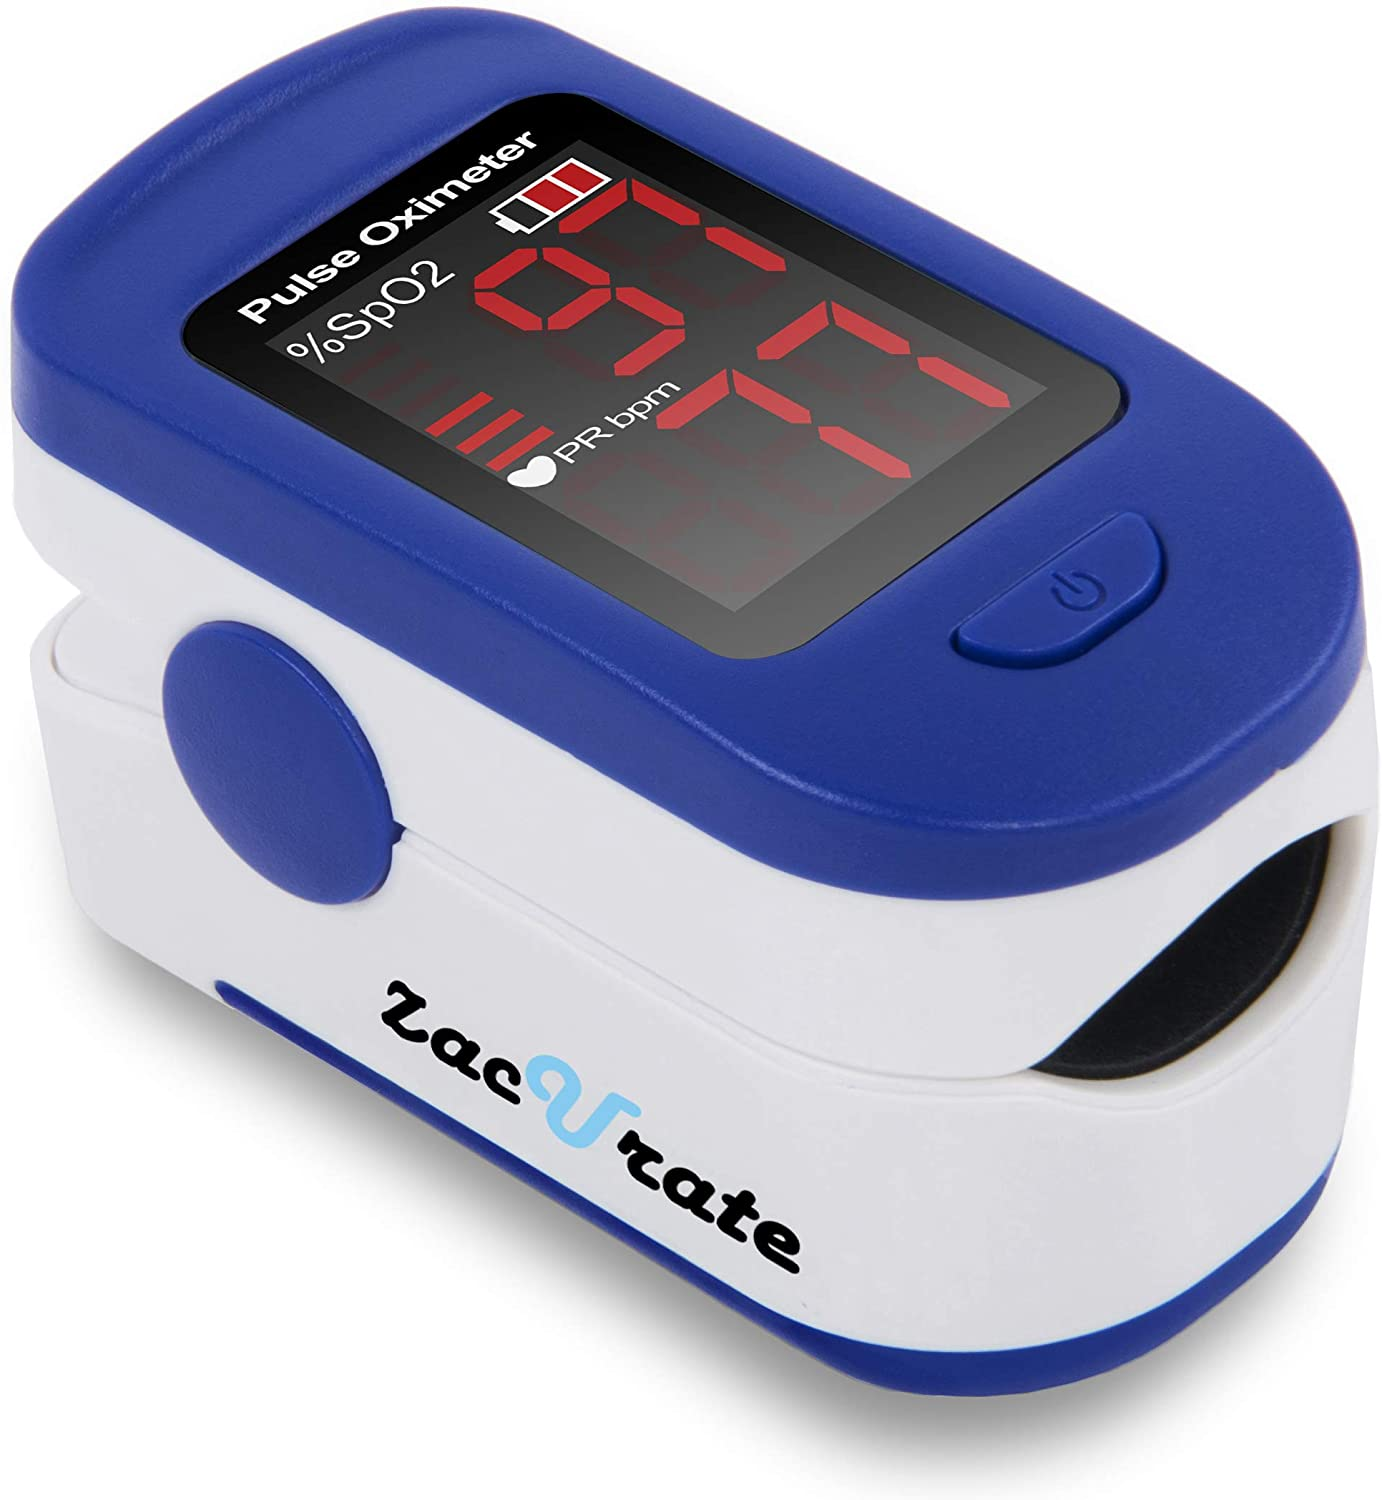 Zacurate 500BL Fingertip Pulse Oximeter Product Image